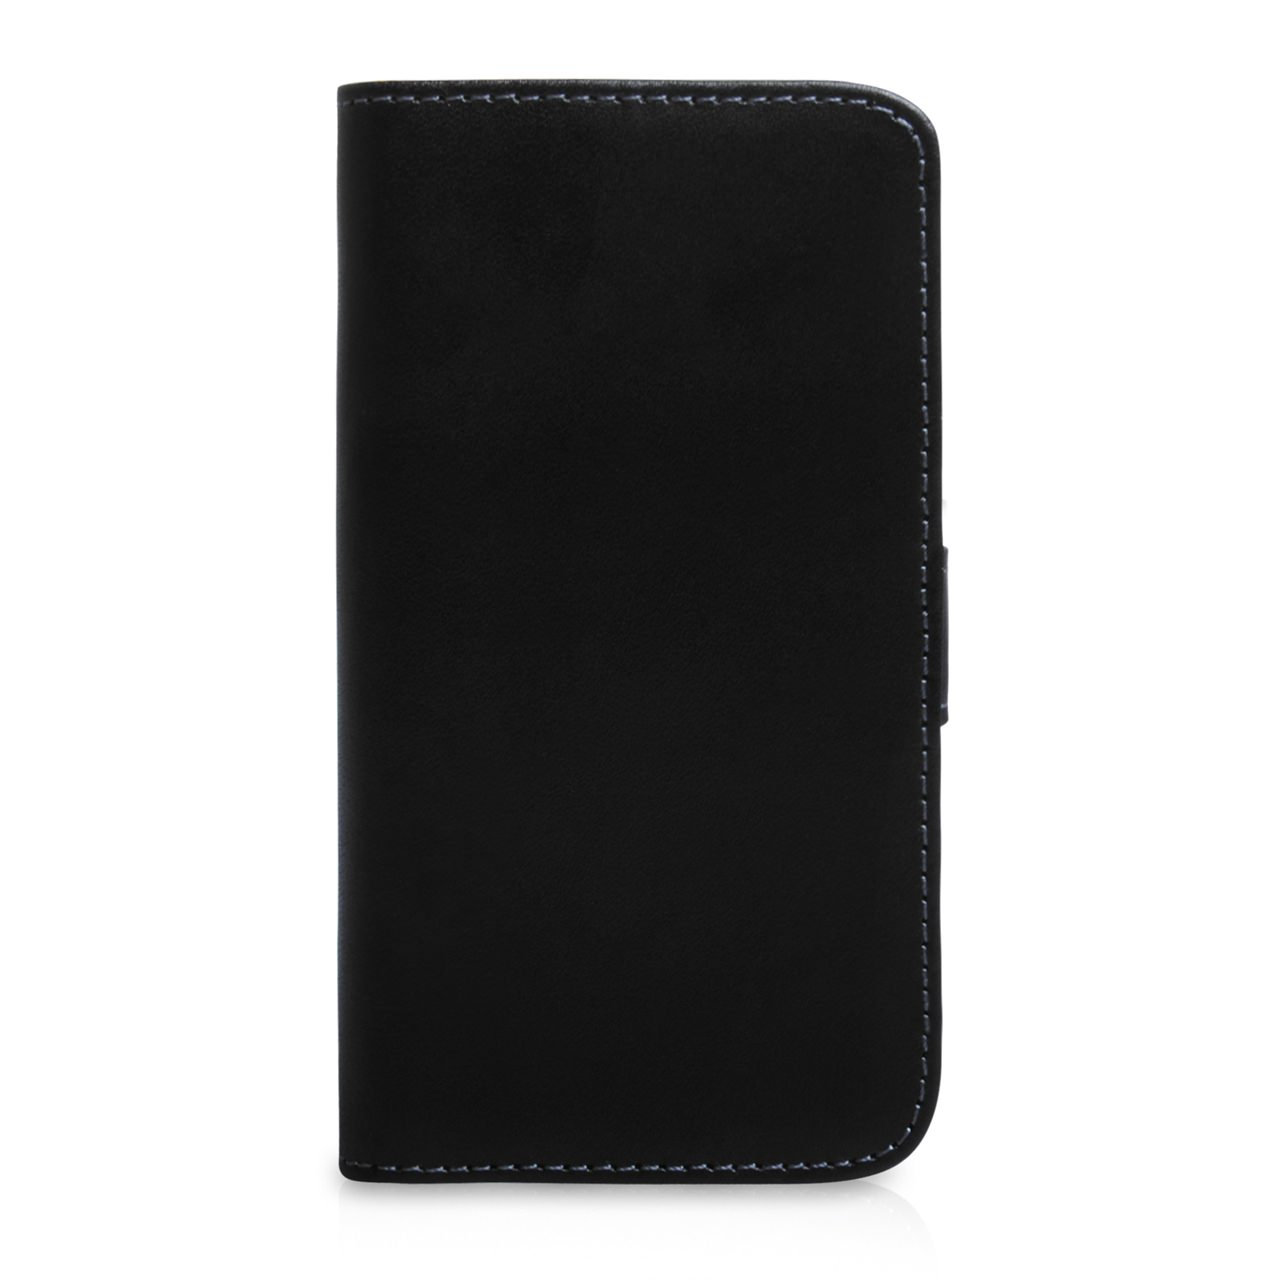 YouSave Samsung Galaxy S4 Mini Black Real Leather Wallet Case